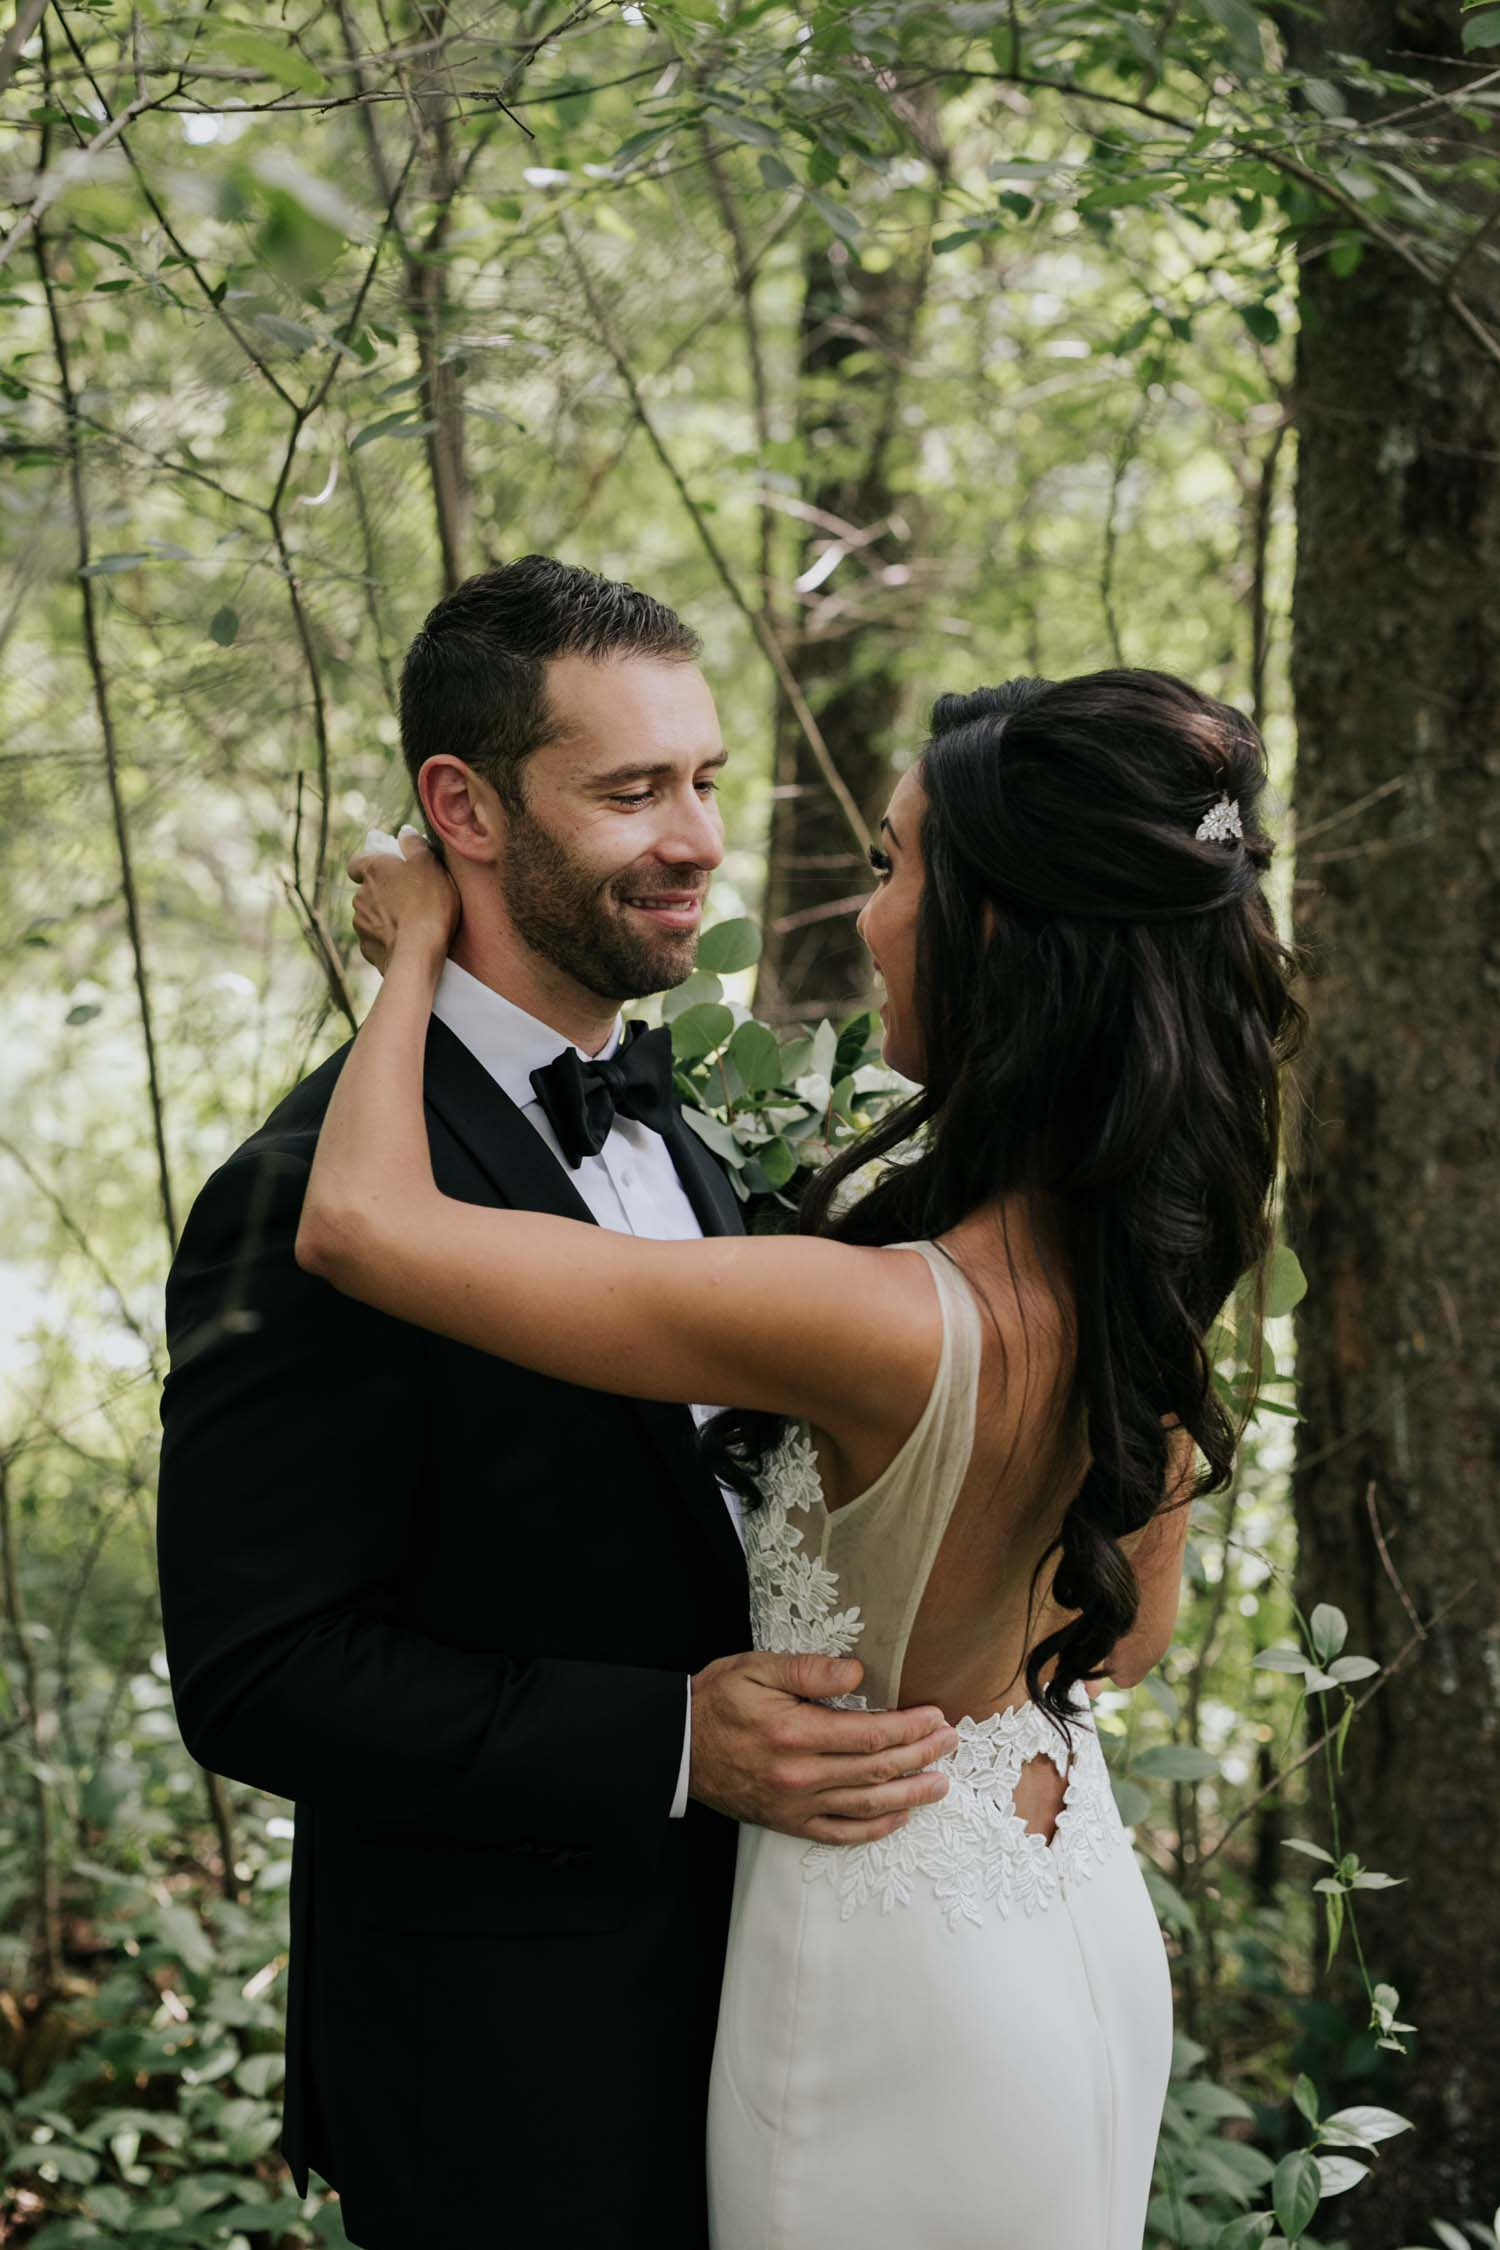 Groom crying as he sees his bride for the first time at their first look reveal in the forest at Fairy Lake Park in Newmarket before their wedding at Madsen's Greenhouse